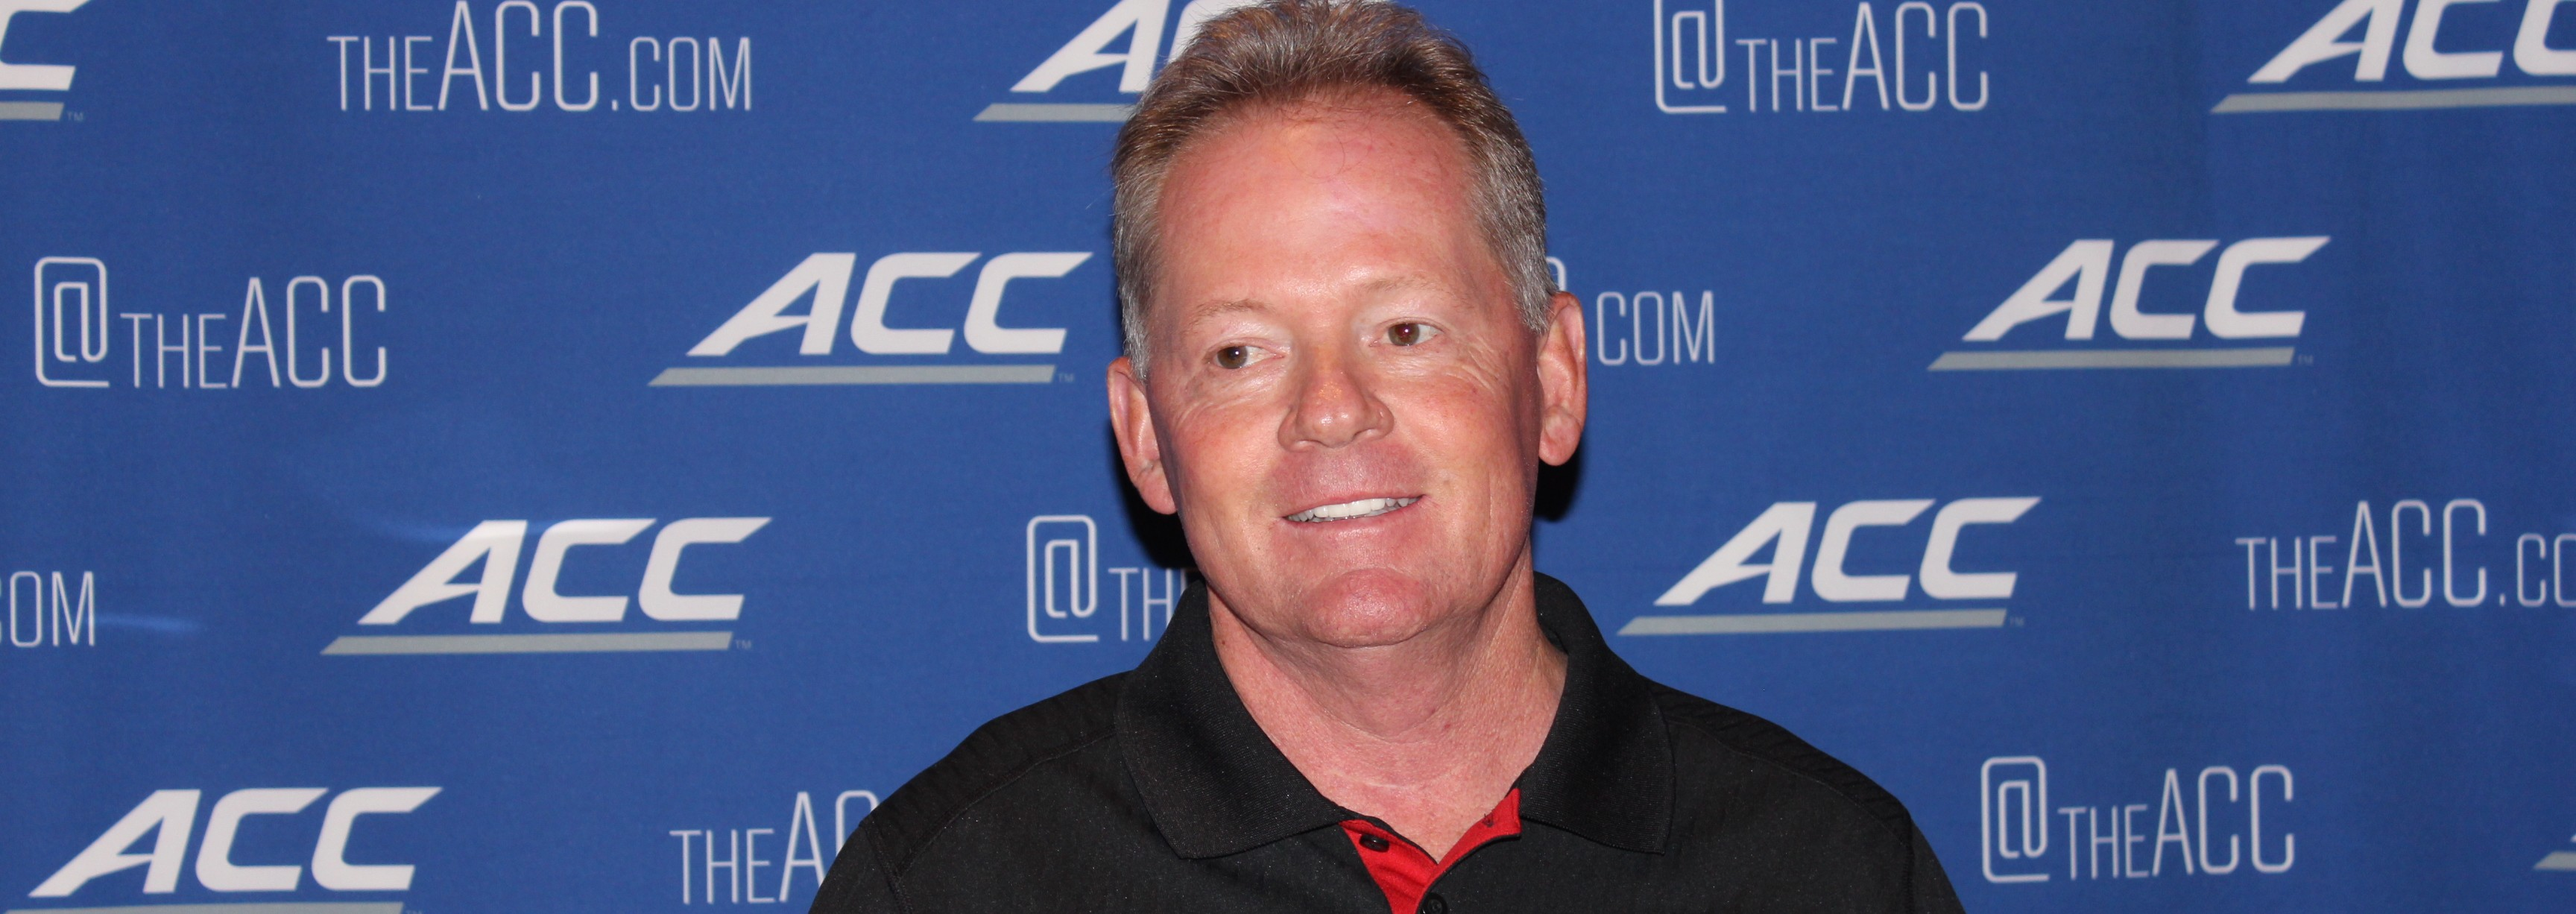 Bobby Petrino 2014 ACC Kickoff Photo by Mark Blankenbaker